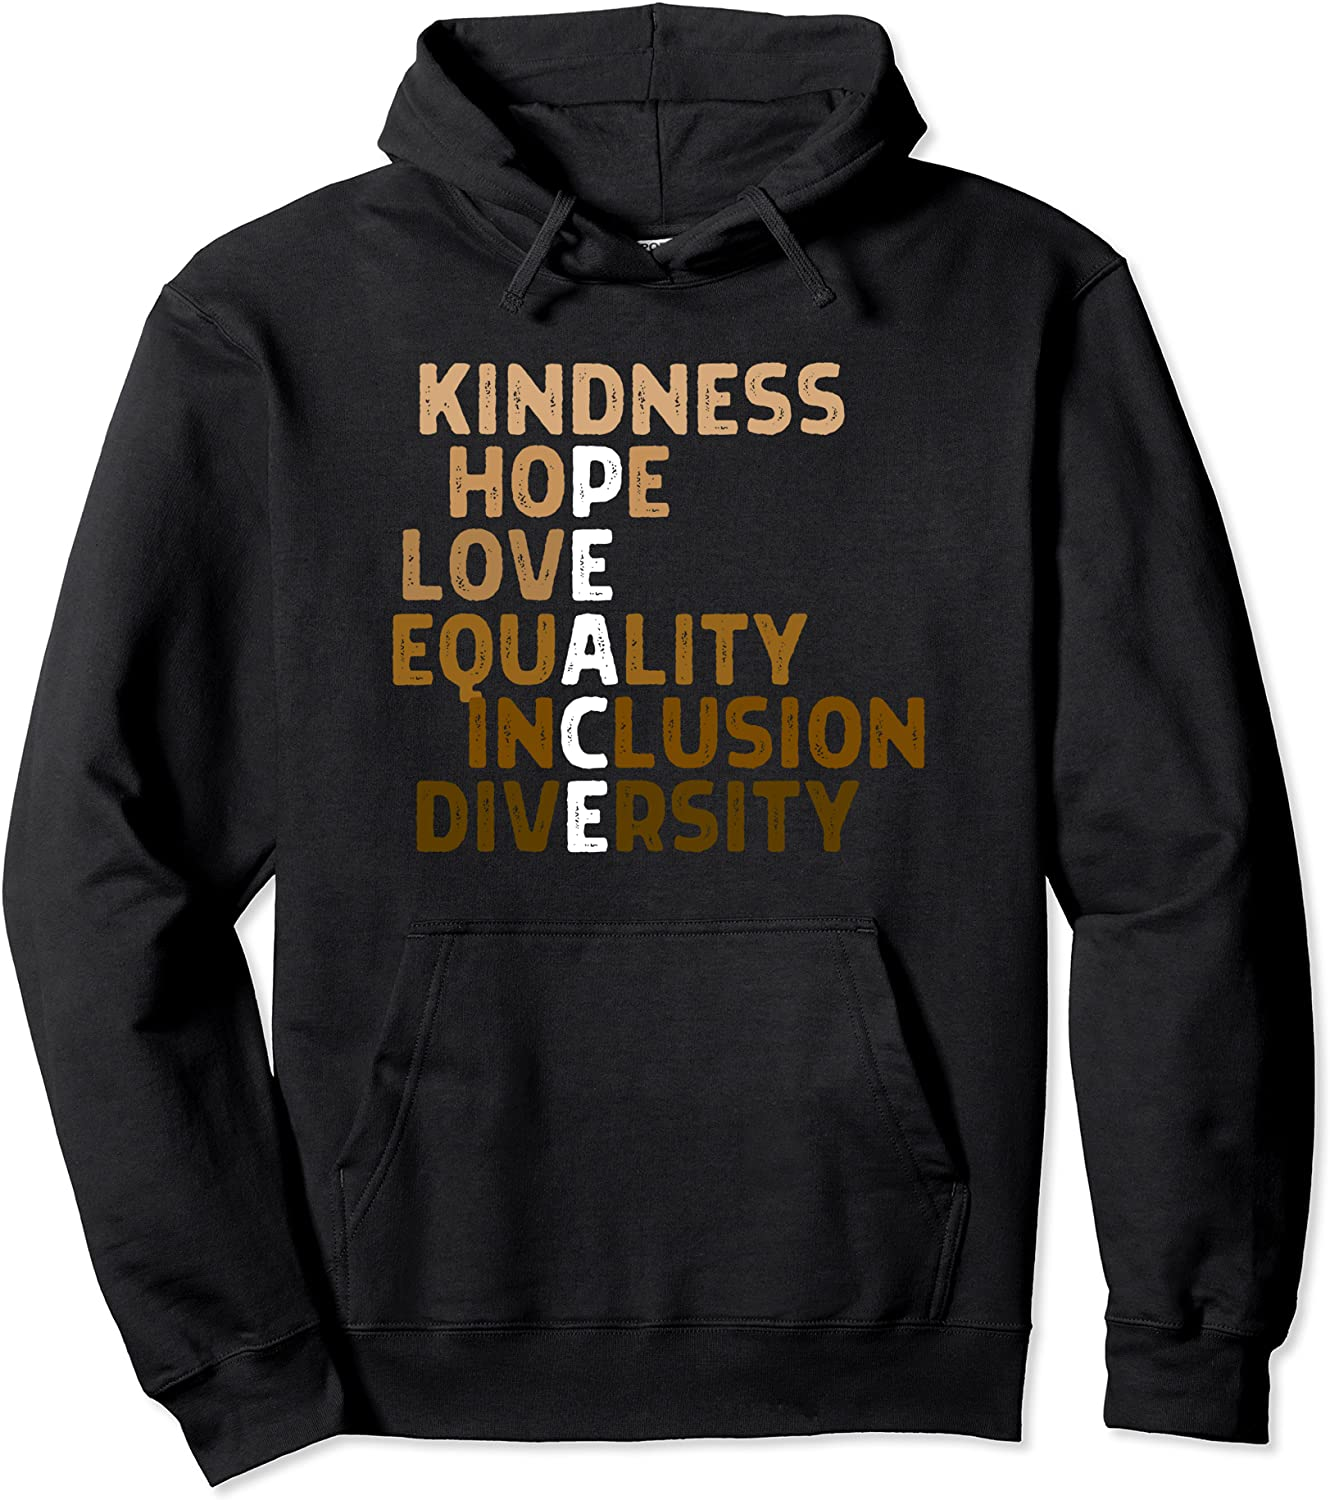 Kindness Peace Equality Inclusion Melanin BLM Wholesale Diversity Max 55% OFF Pullover